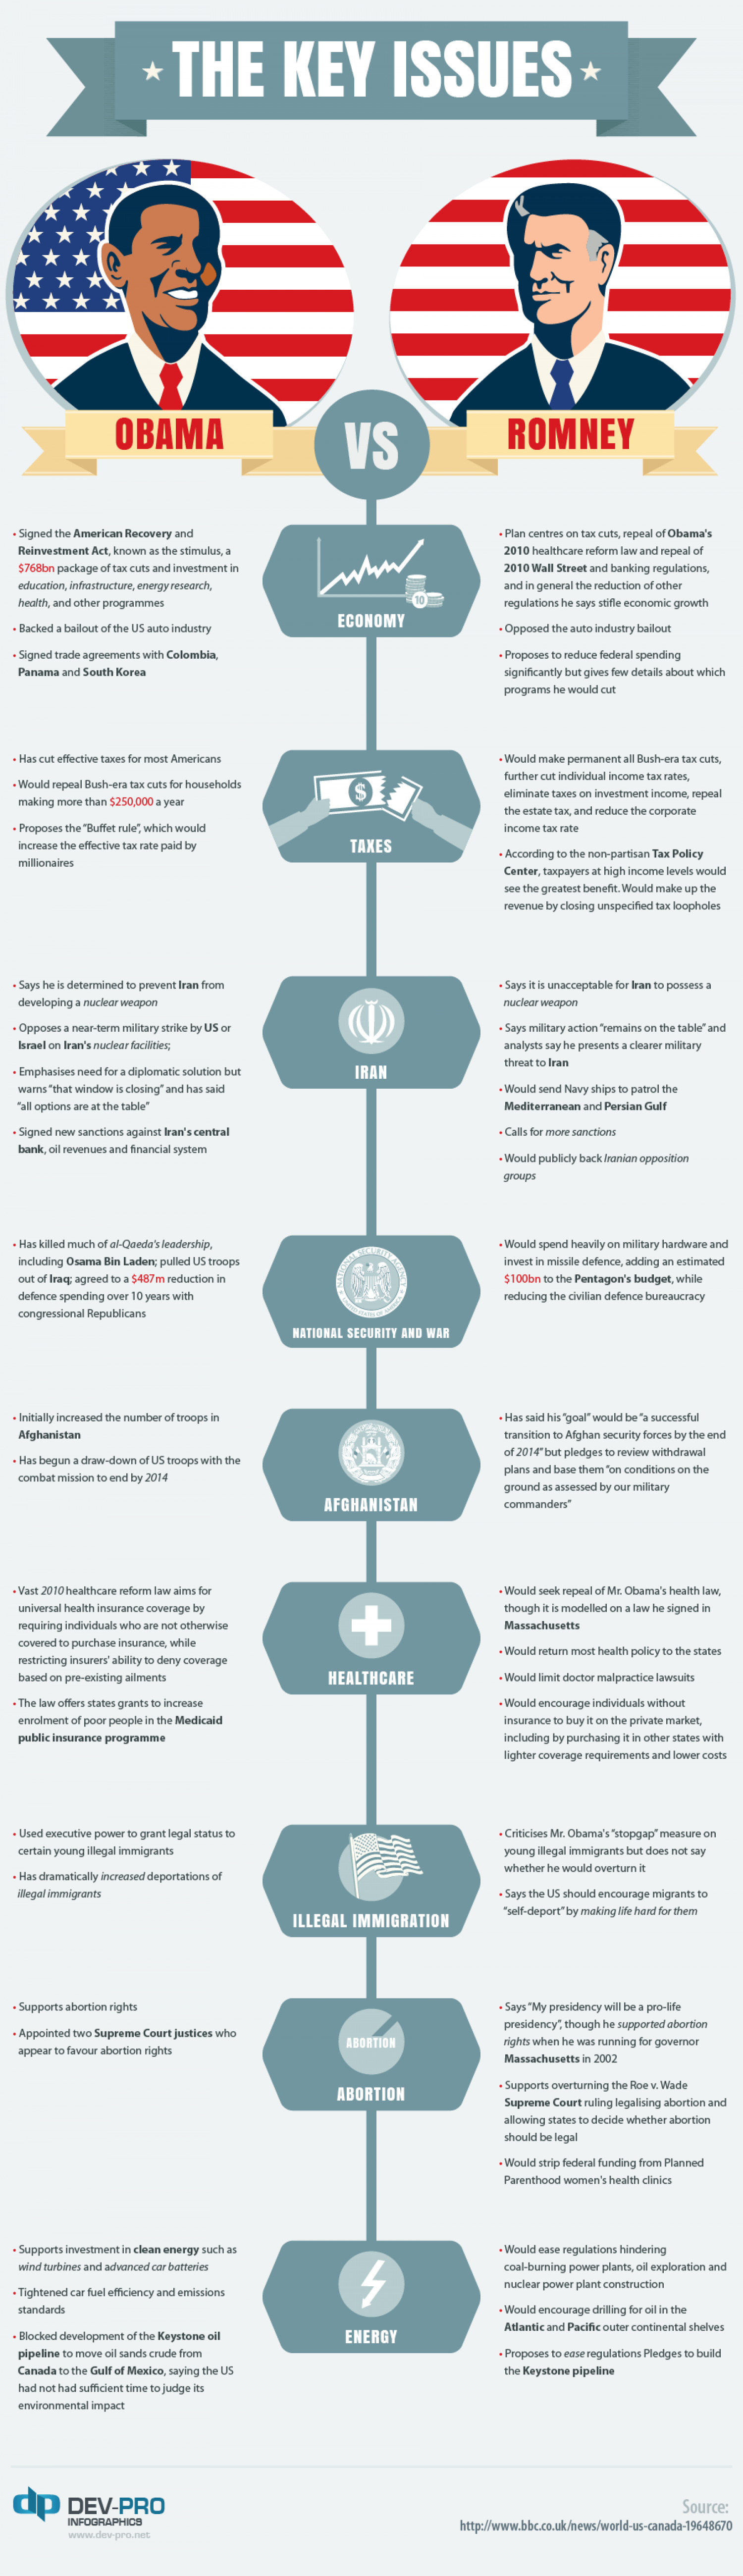 Obama and Romney: The Key Issues Infographic